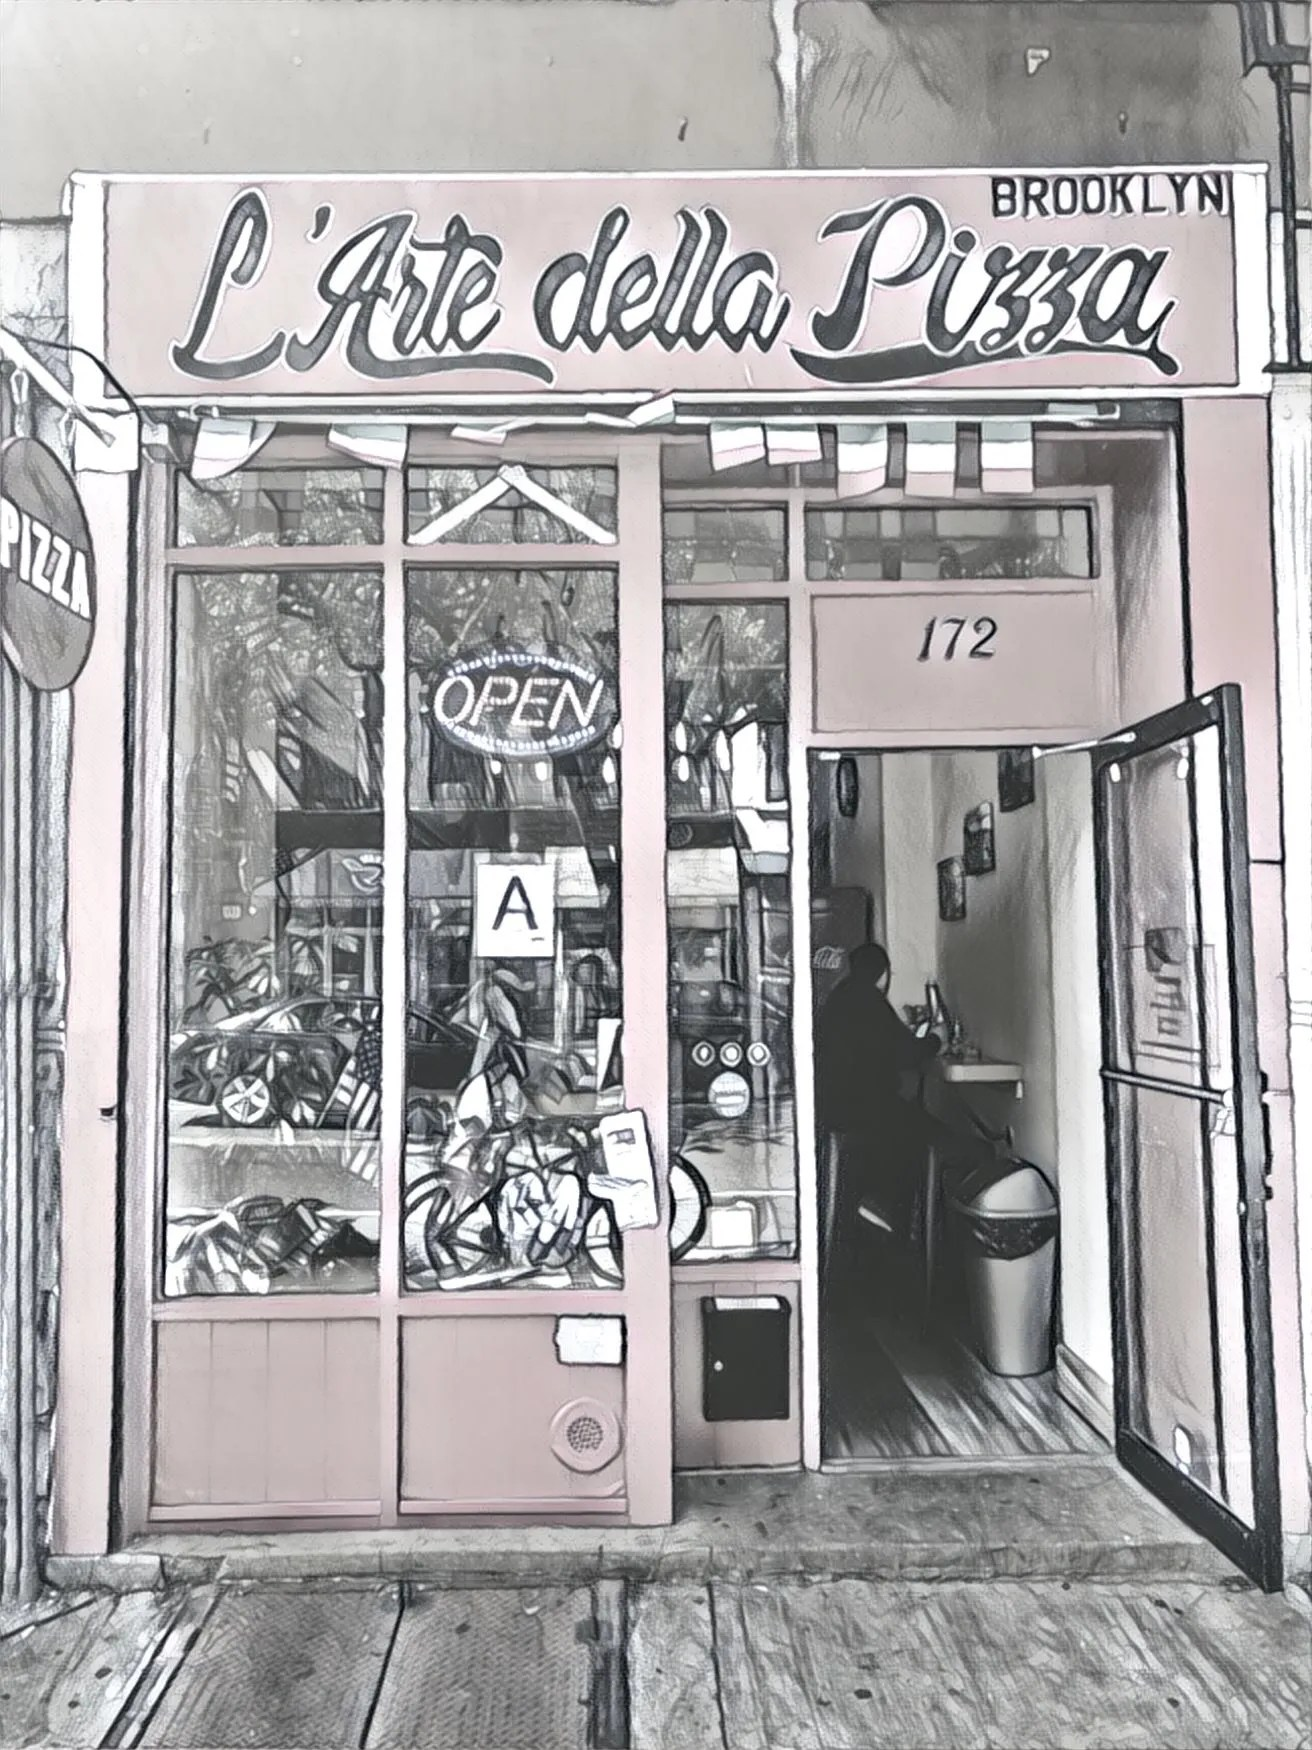 Pizza Arte Open Hours L Arte Della Pizza Brooklyn